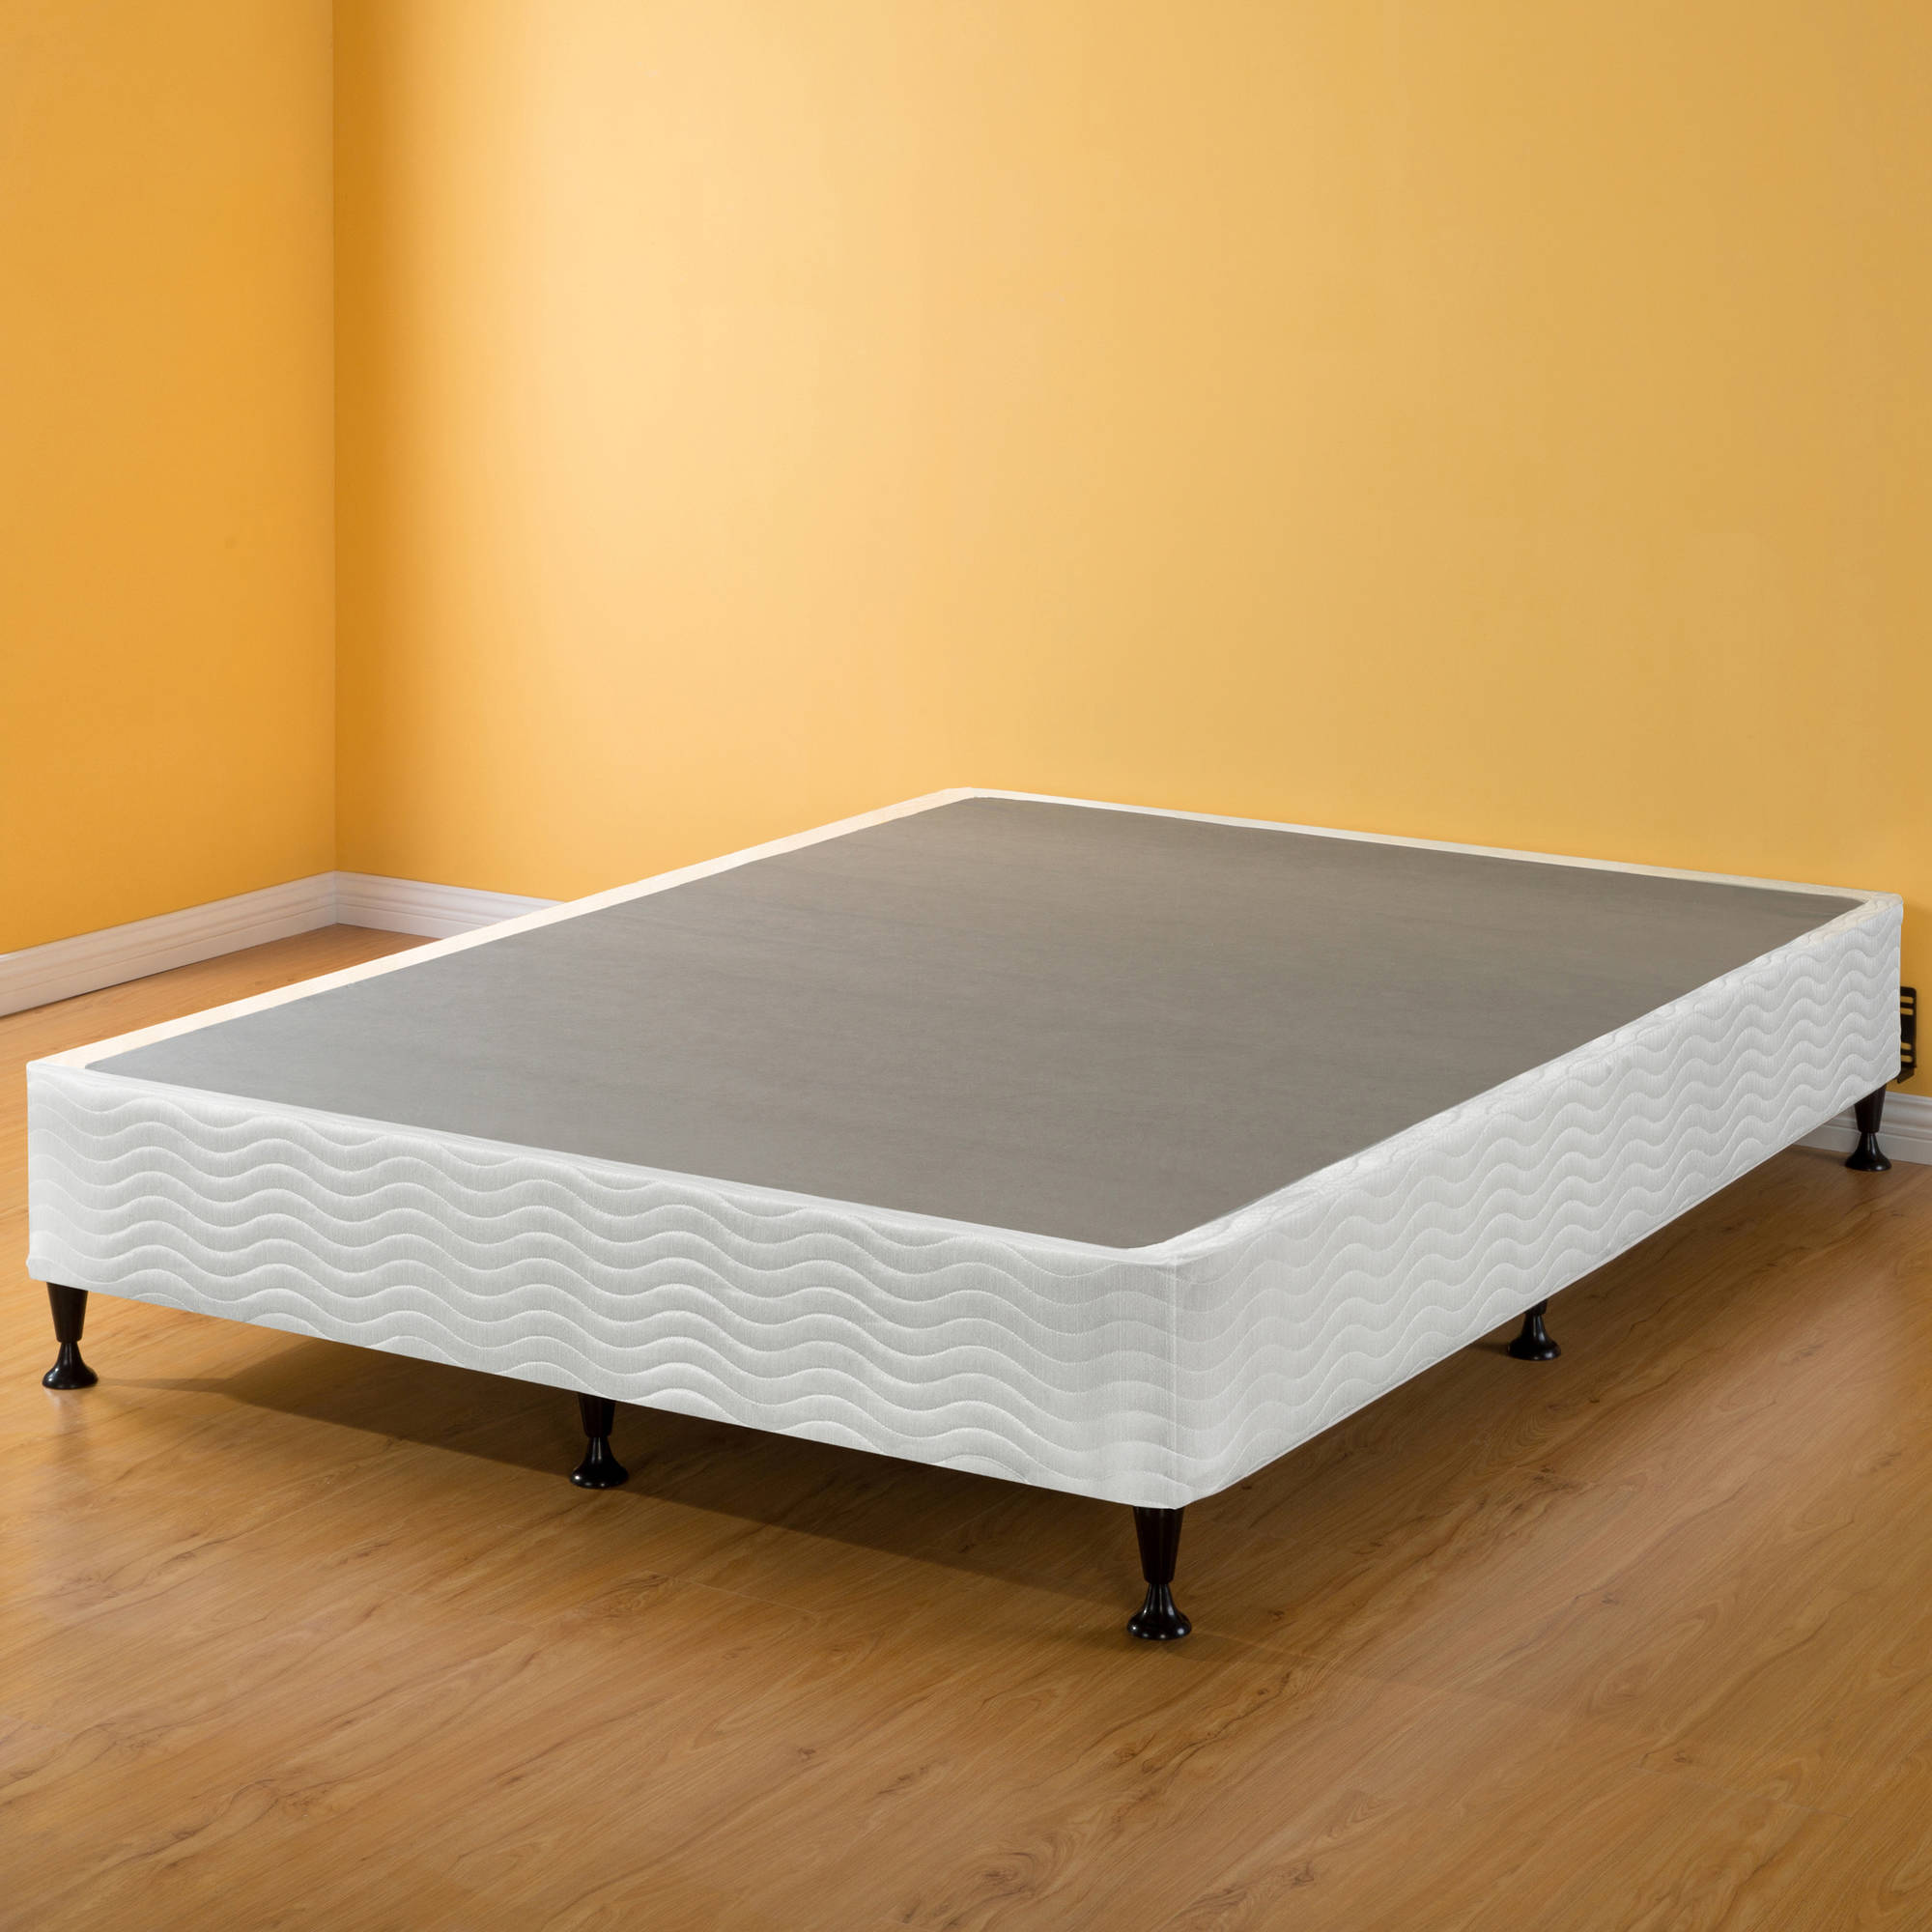 King Size Bed Box Titan Northeastfitness Co